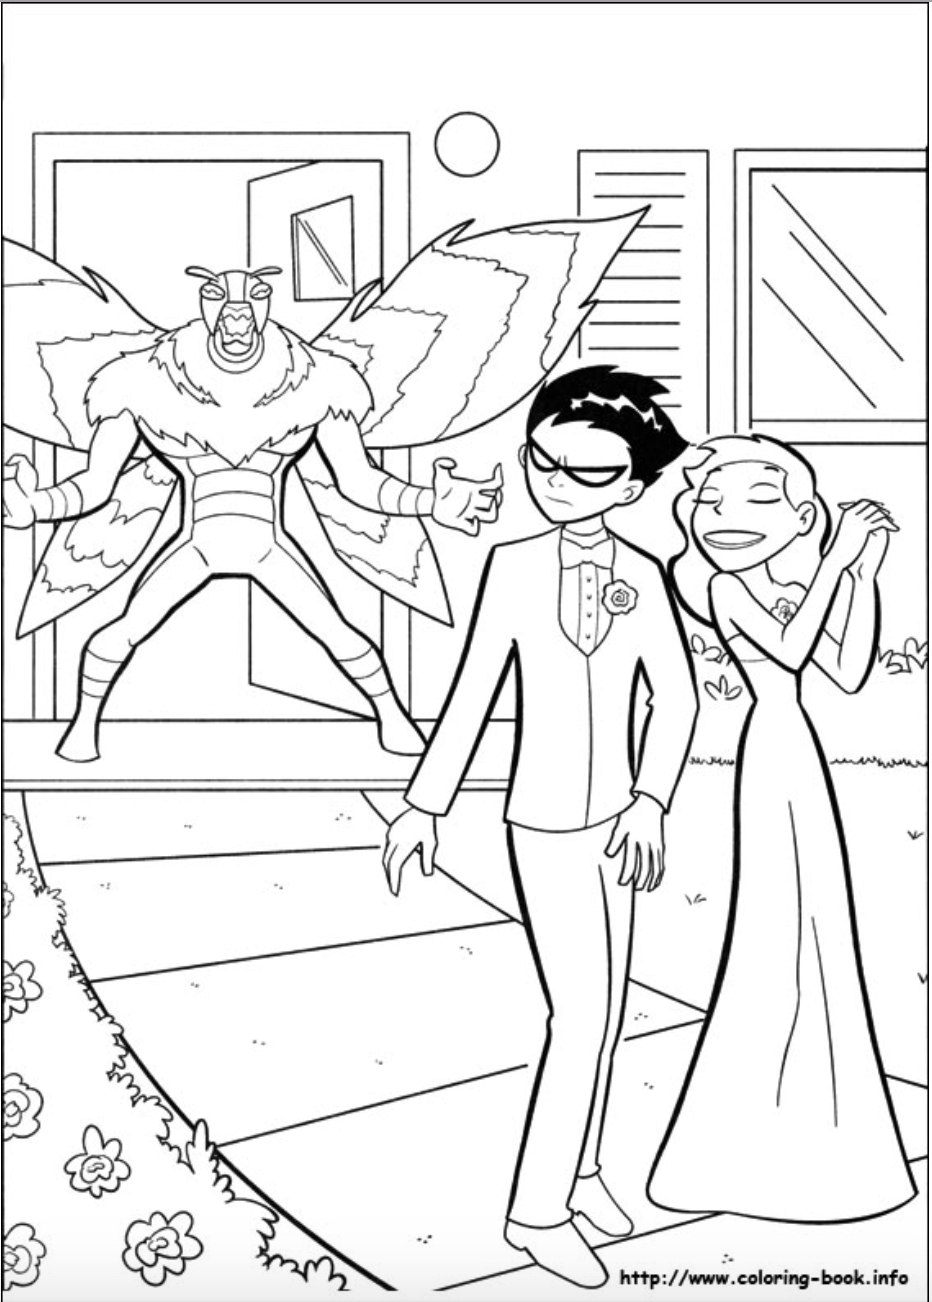 kitten forced robin to go to the prom with her coloring page